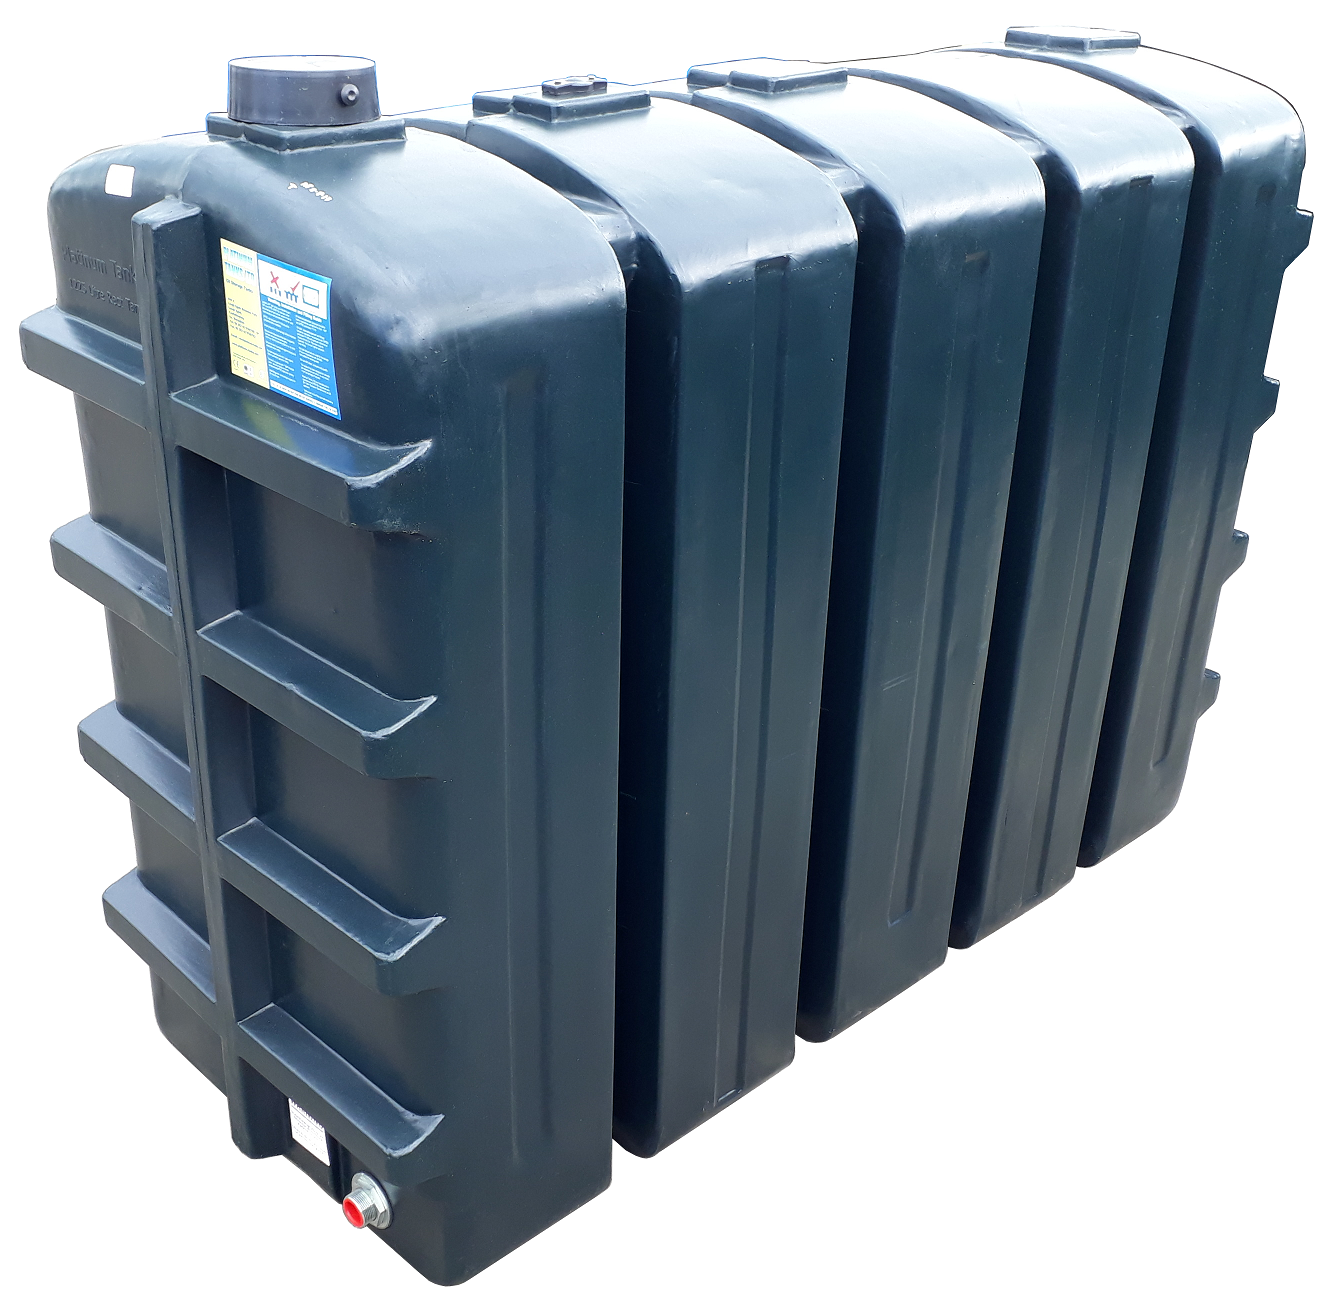 1250 Litre Rectangular Oil Tank Image